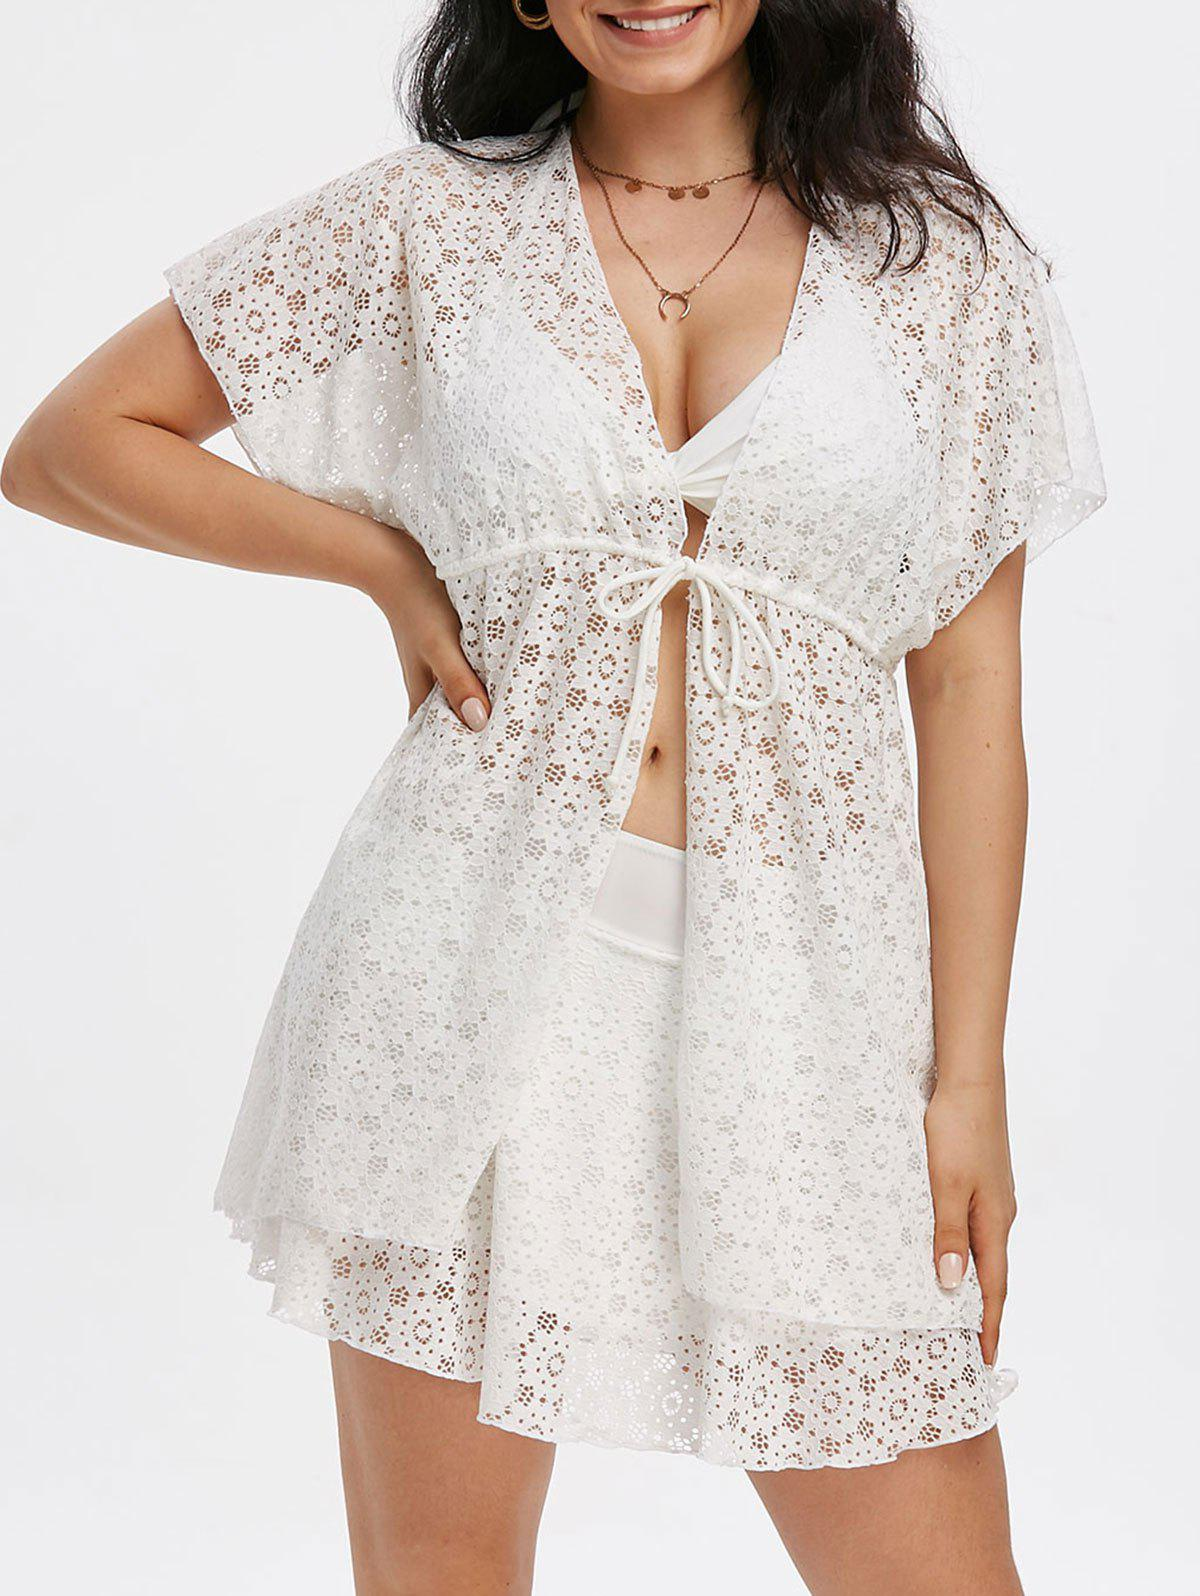 3 Piece Padded Lace Swimsuit Bra Skirt and Cover Up - WHITE L